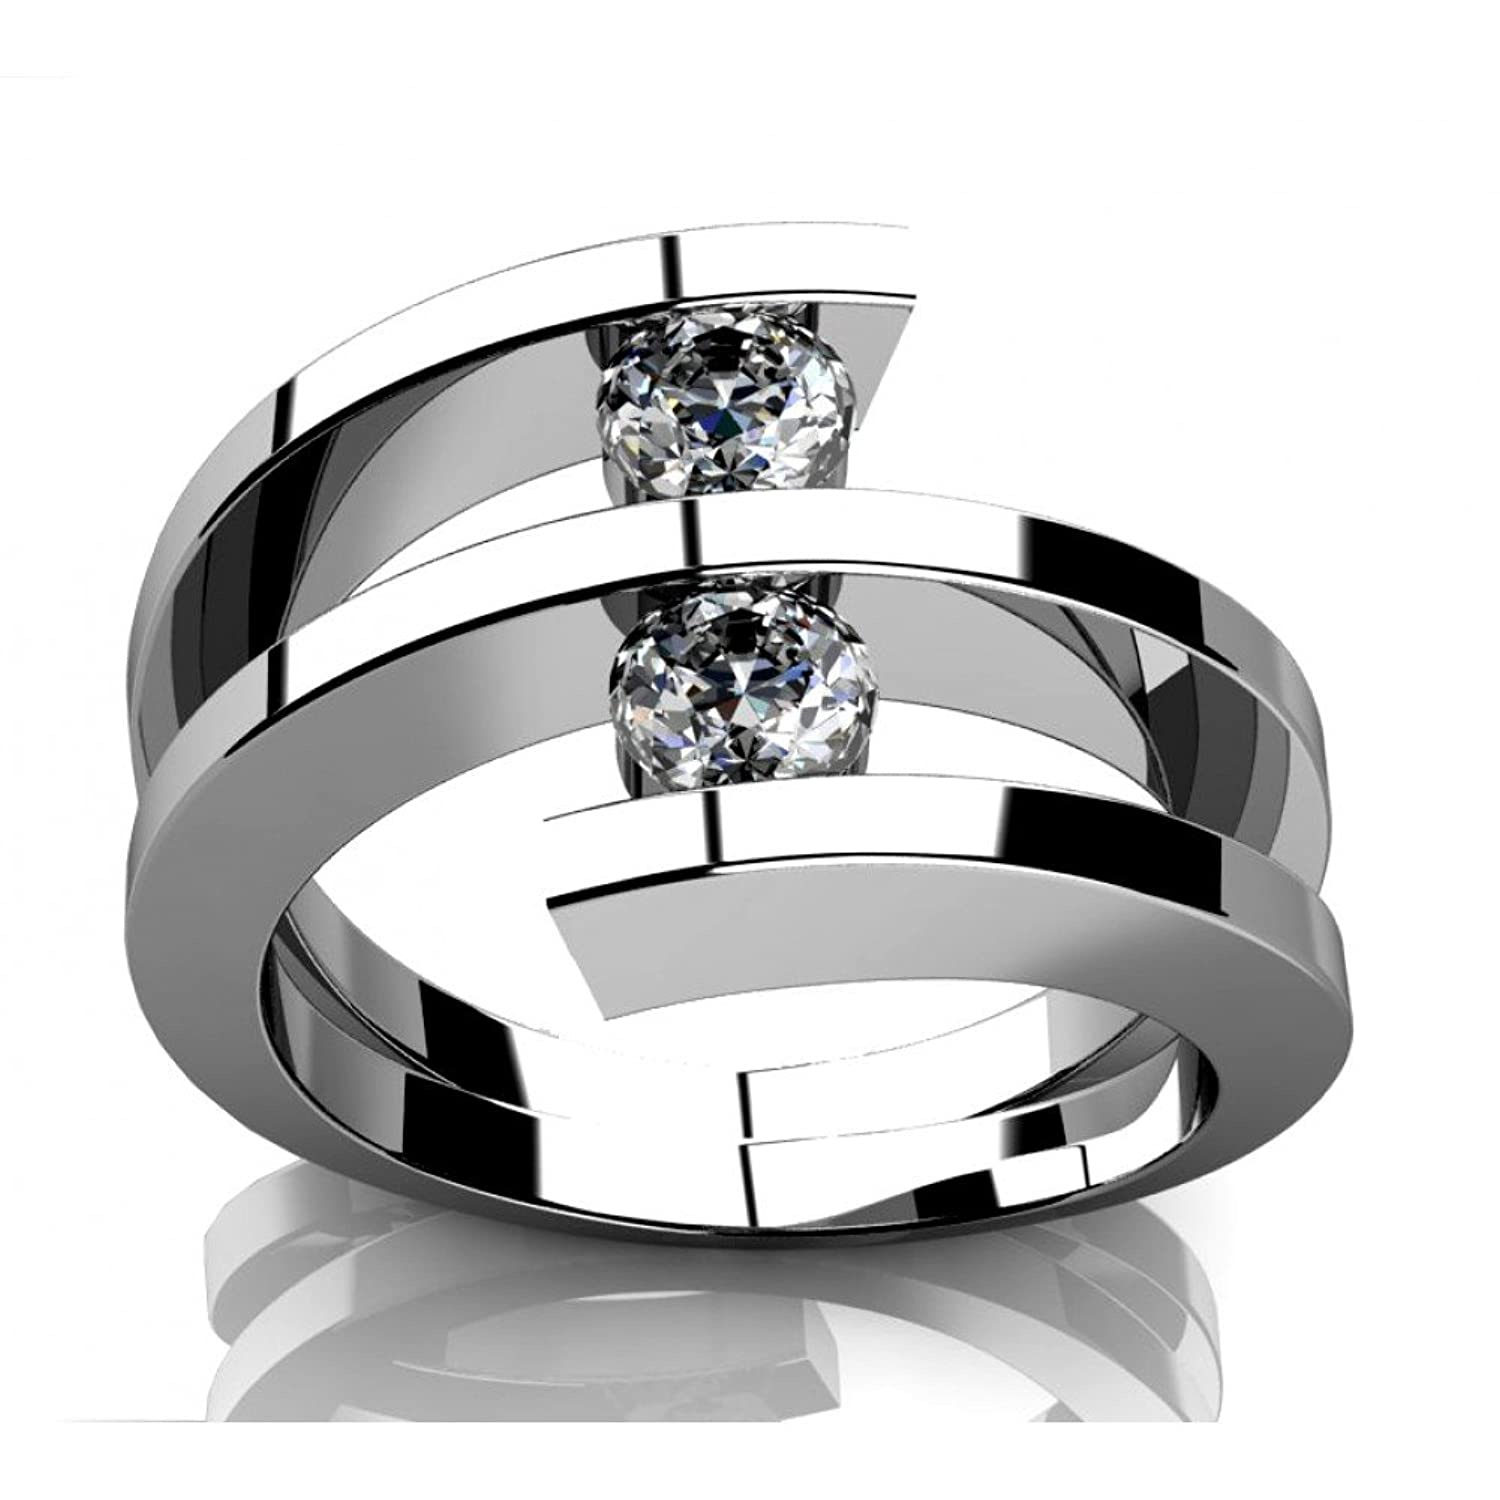 060 Ct Two Round Cut Diamonds Anniversary Ring In 14 Kt White Gold In Size  7